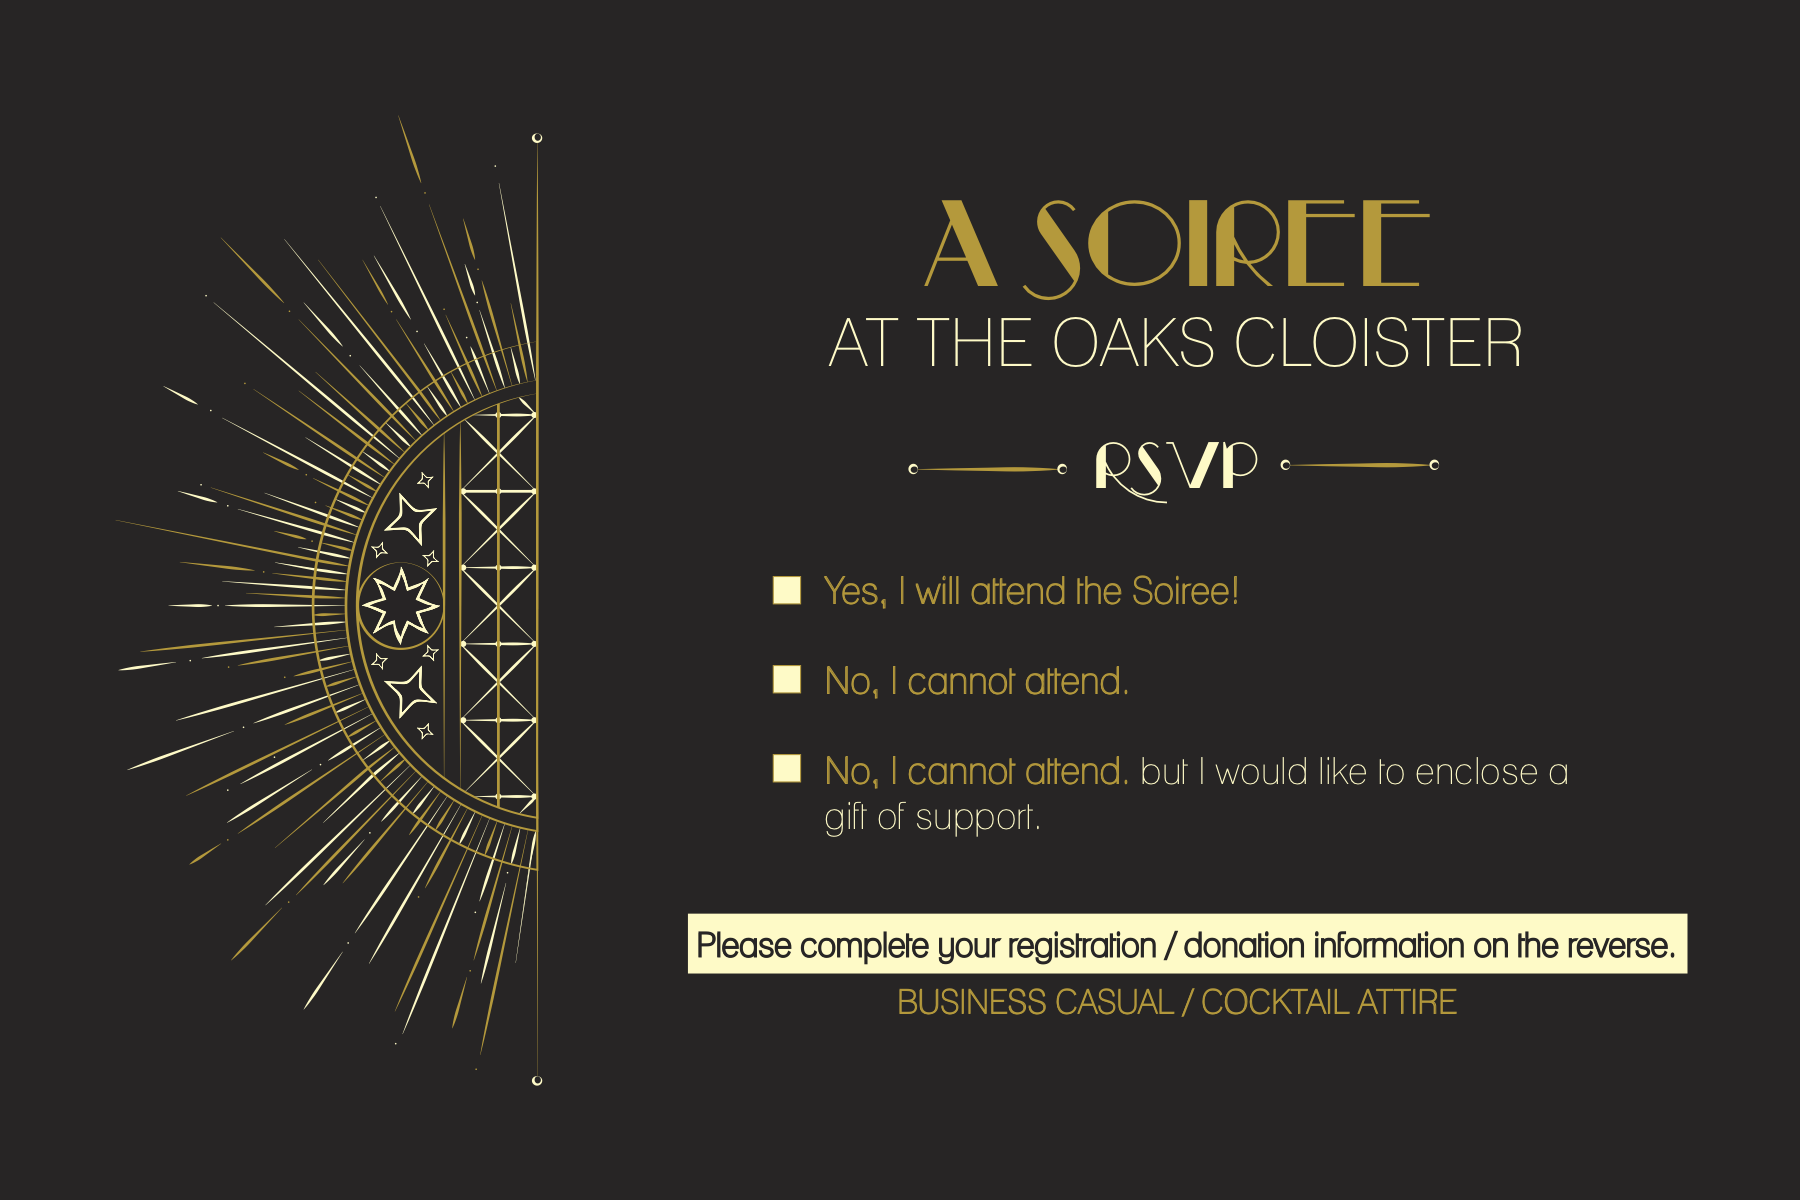 Soiree RSVP 1.png